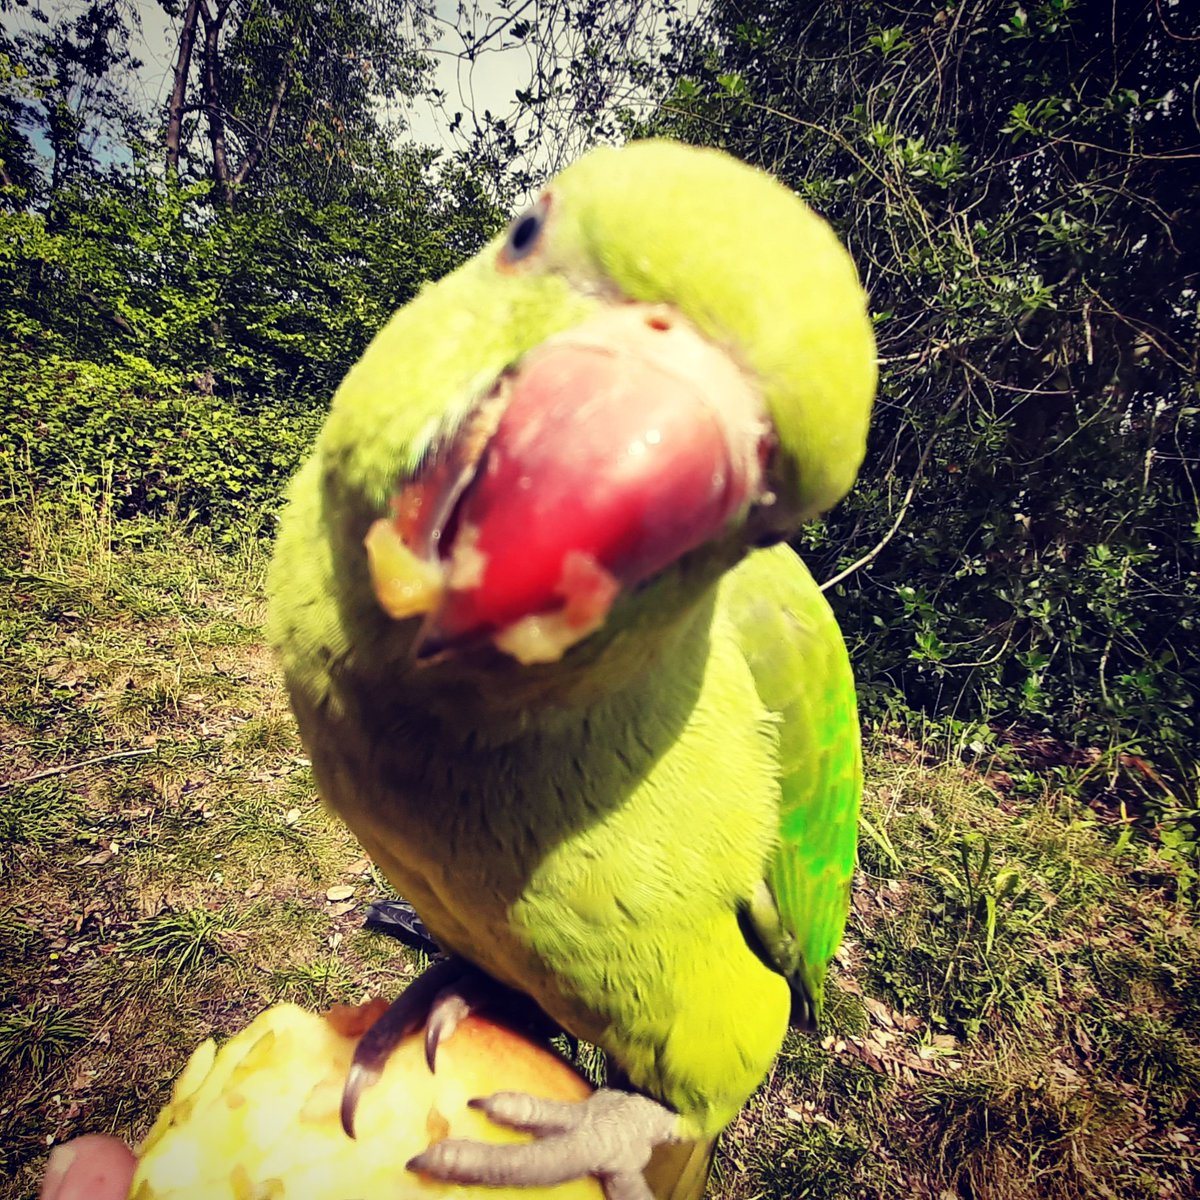 Those feathered friends @BBCCountryfile are jolly inquisitive!!   #countryfile #parakeets